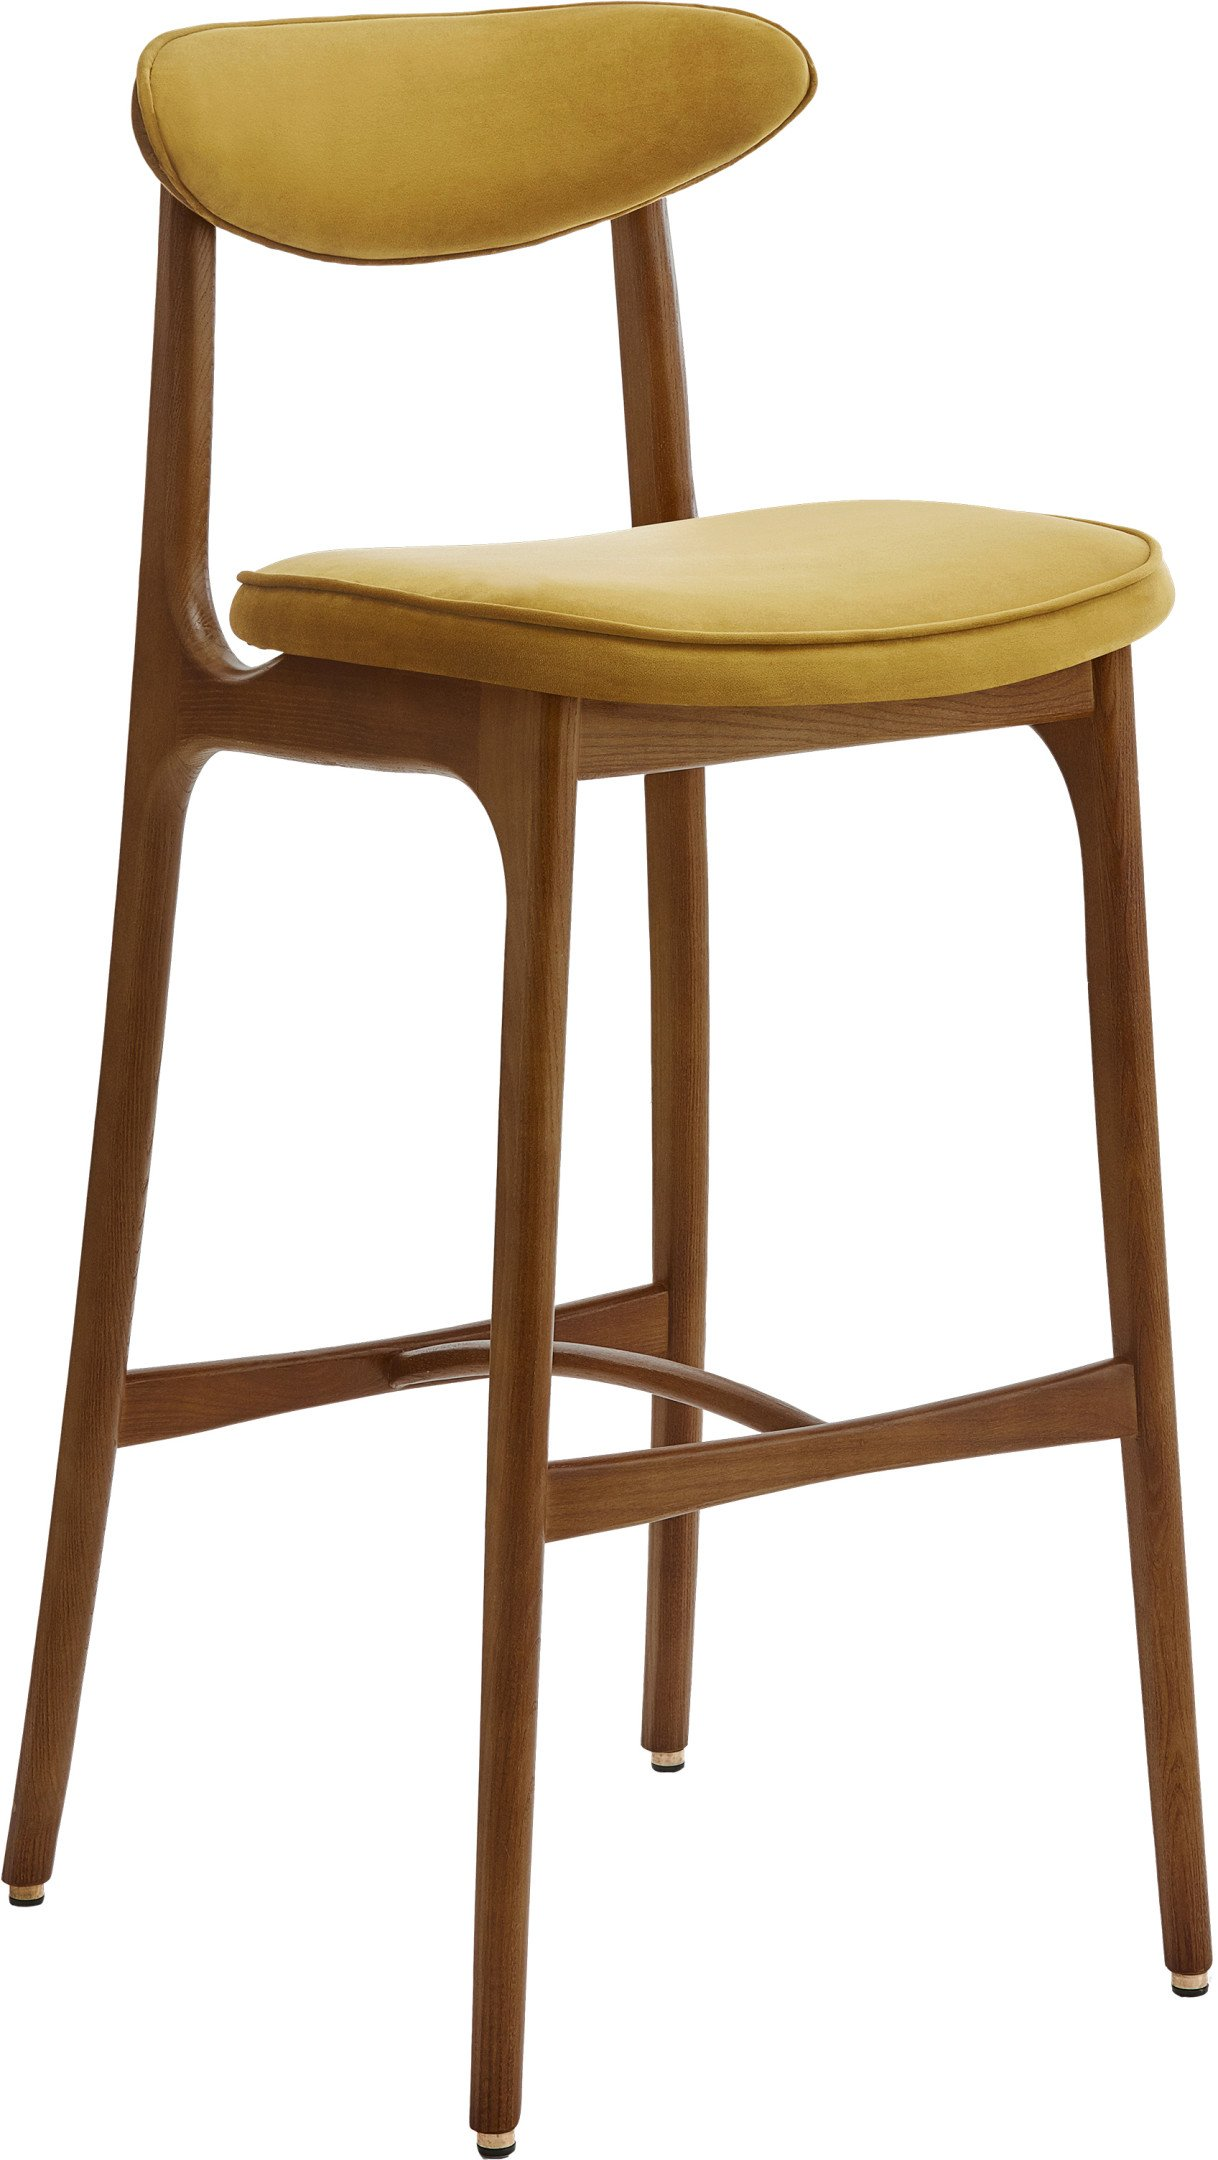 200-190 Bar Stool 75 Shine Velvet Mustard, 366 Concept